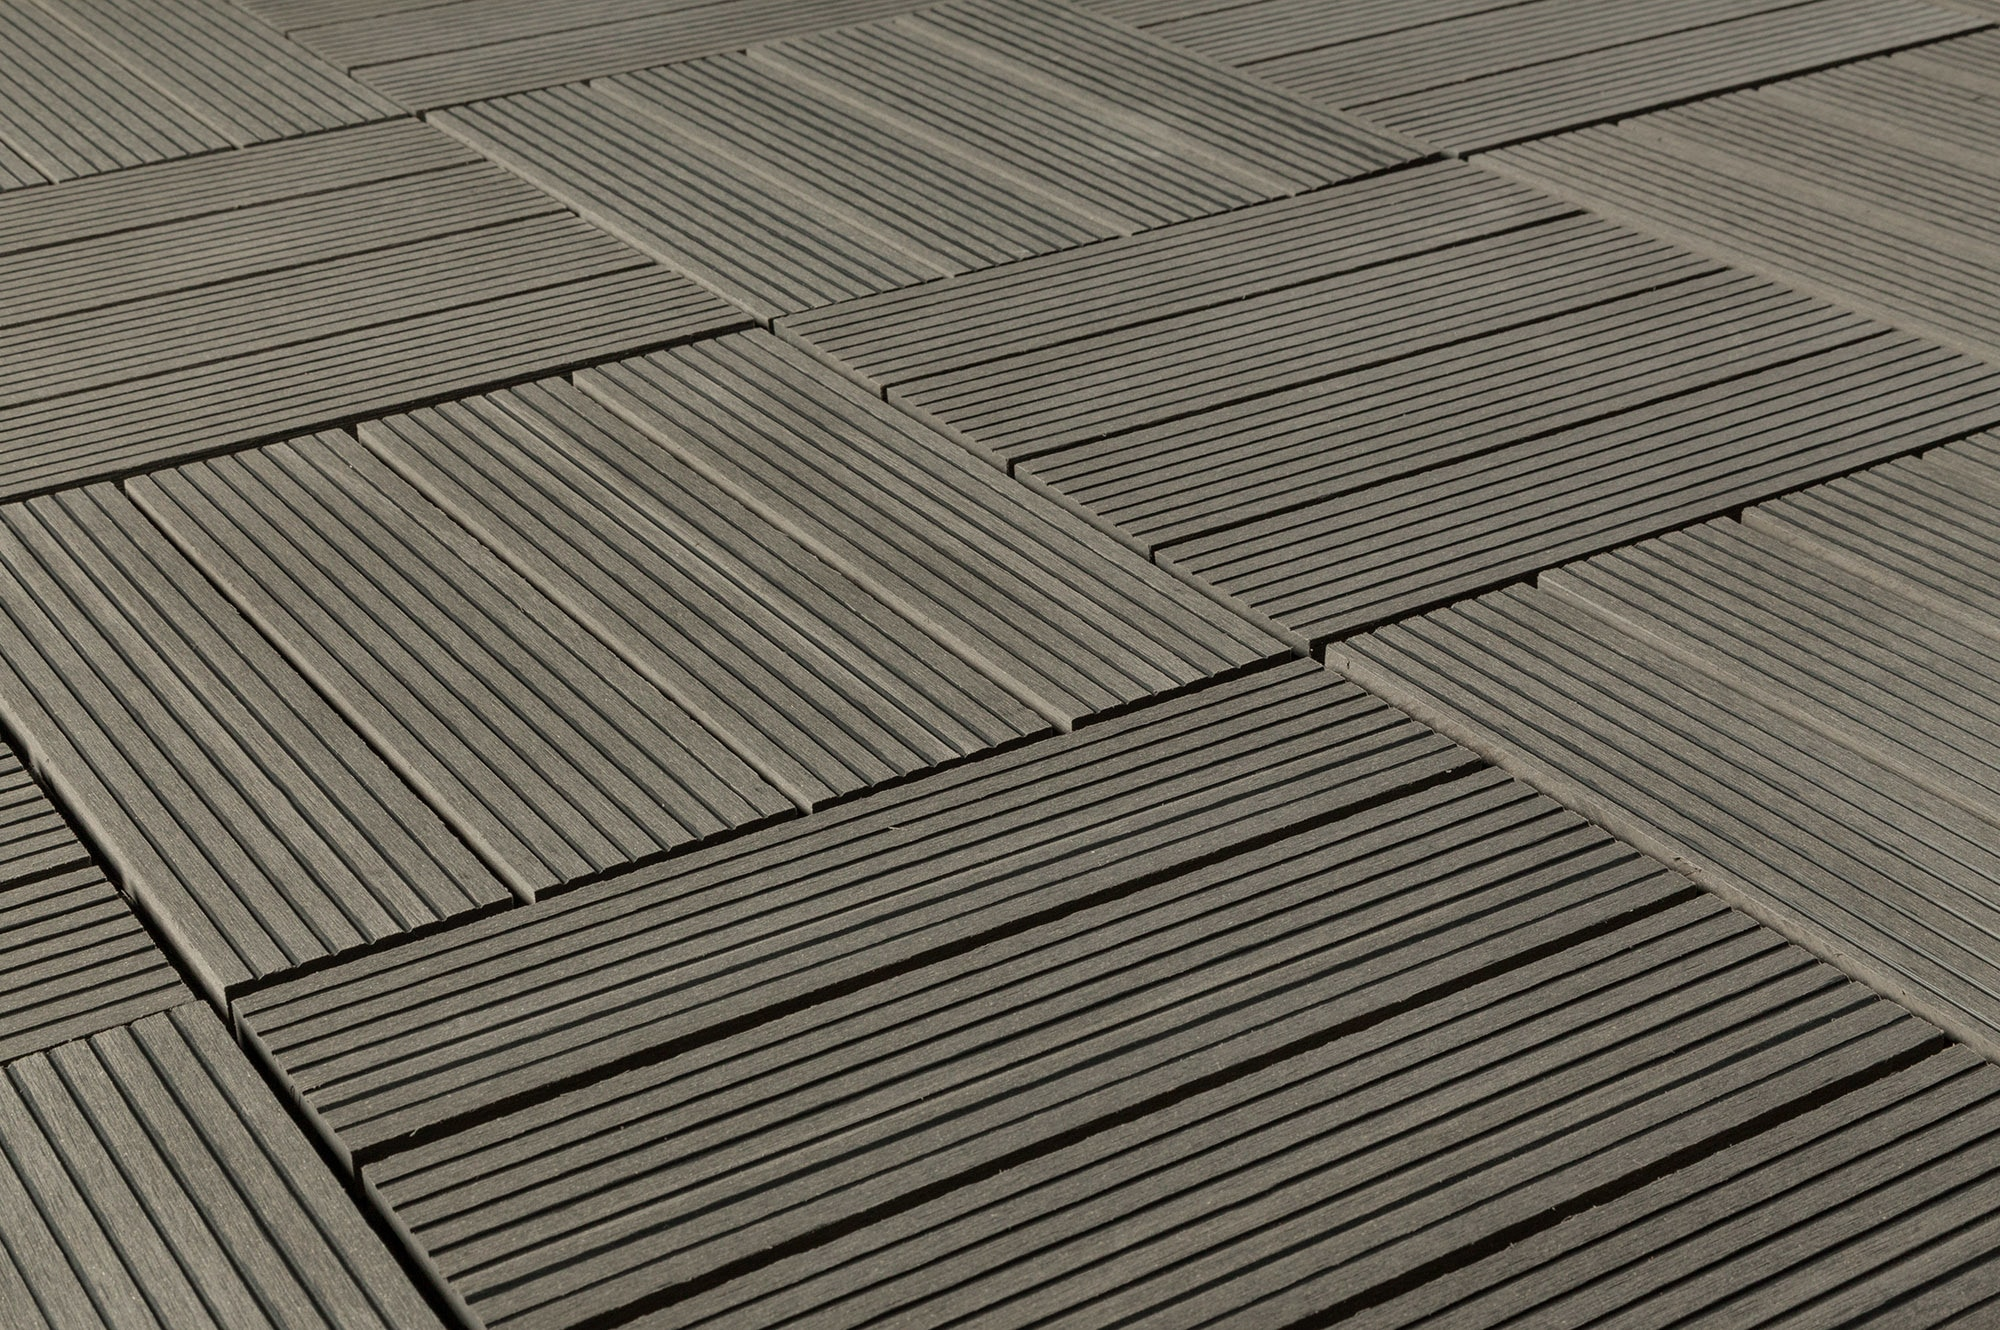 Free samples kontiki composite interlocking deck tiles classic free samples kontiki composite interlocking deck tiles classic 25 year gray 12x12x1516 baanklon Image collections